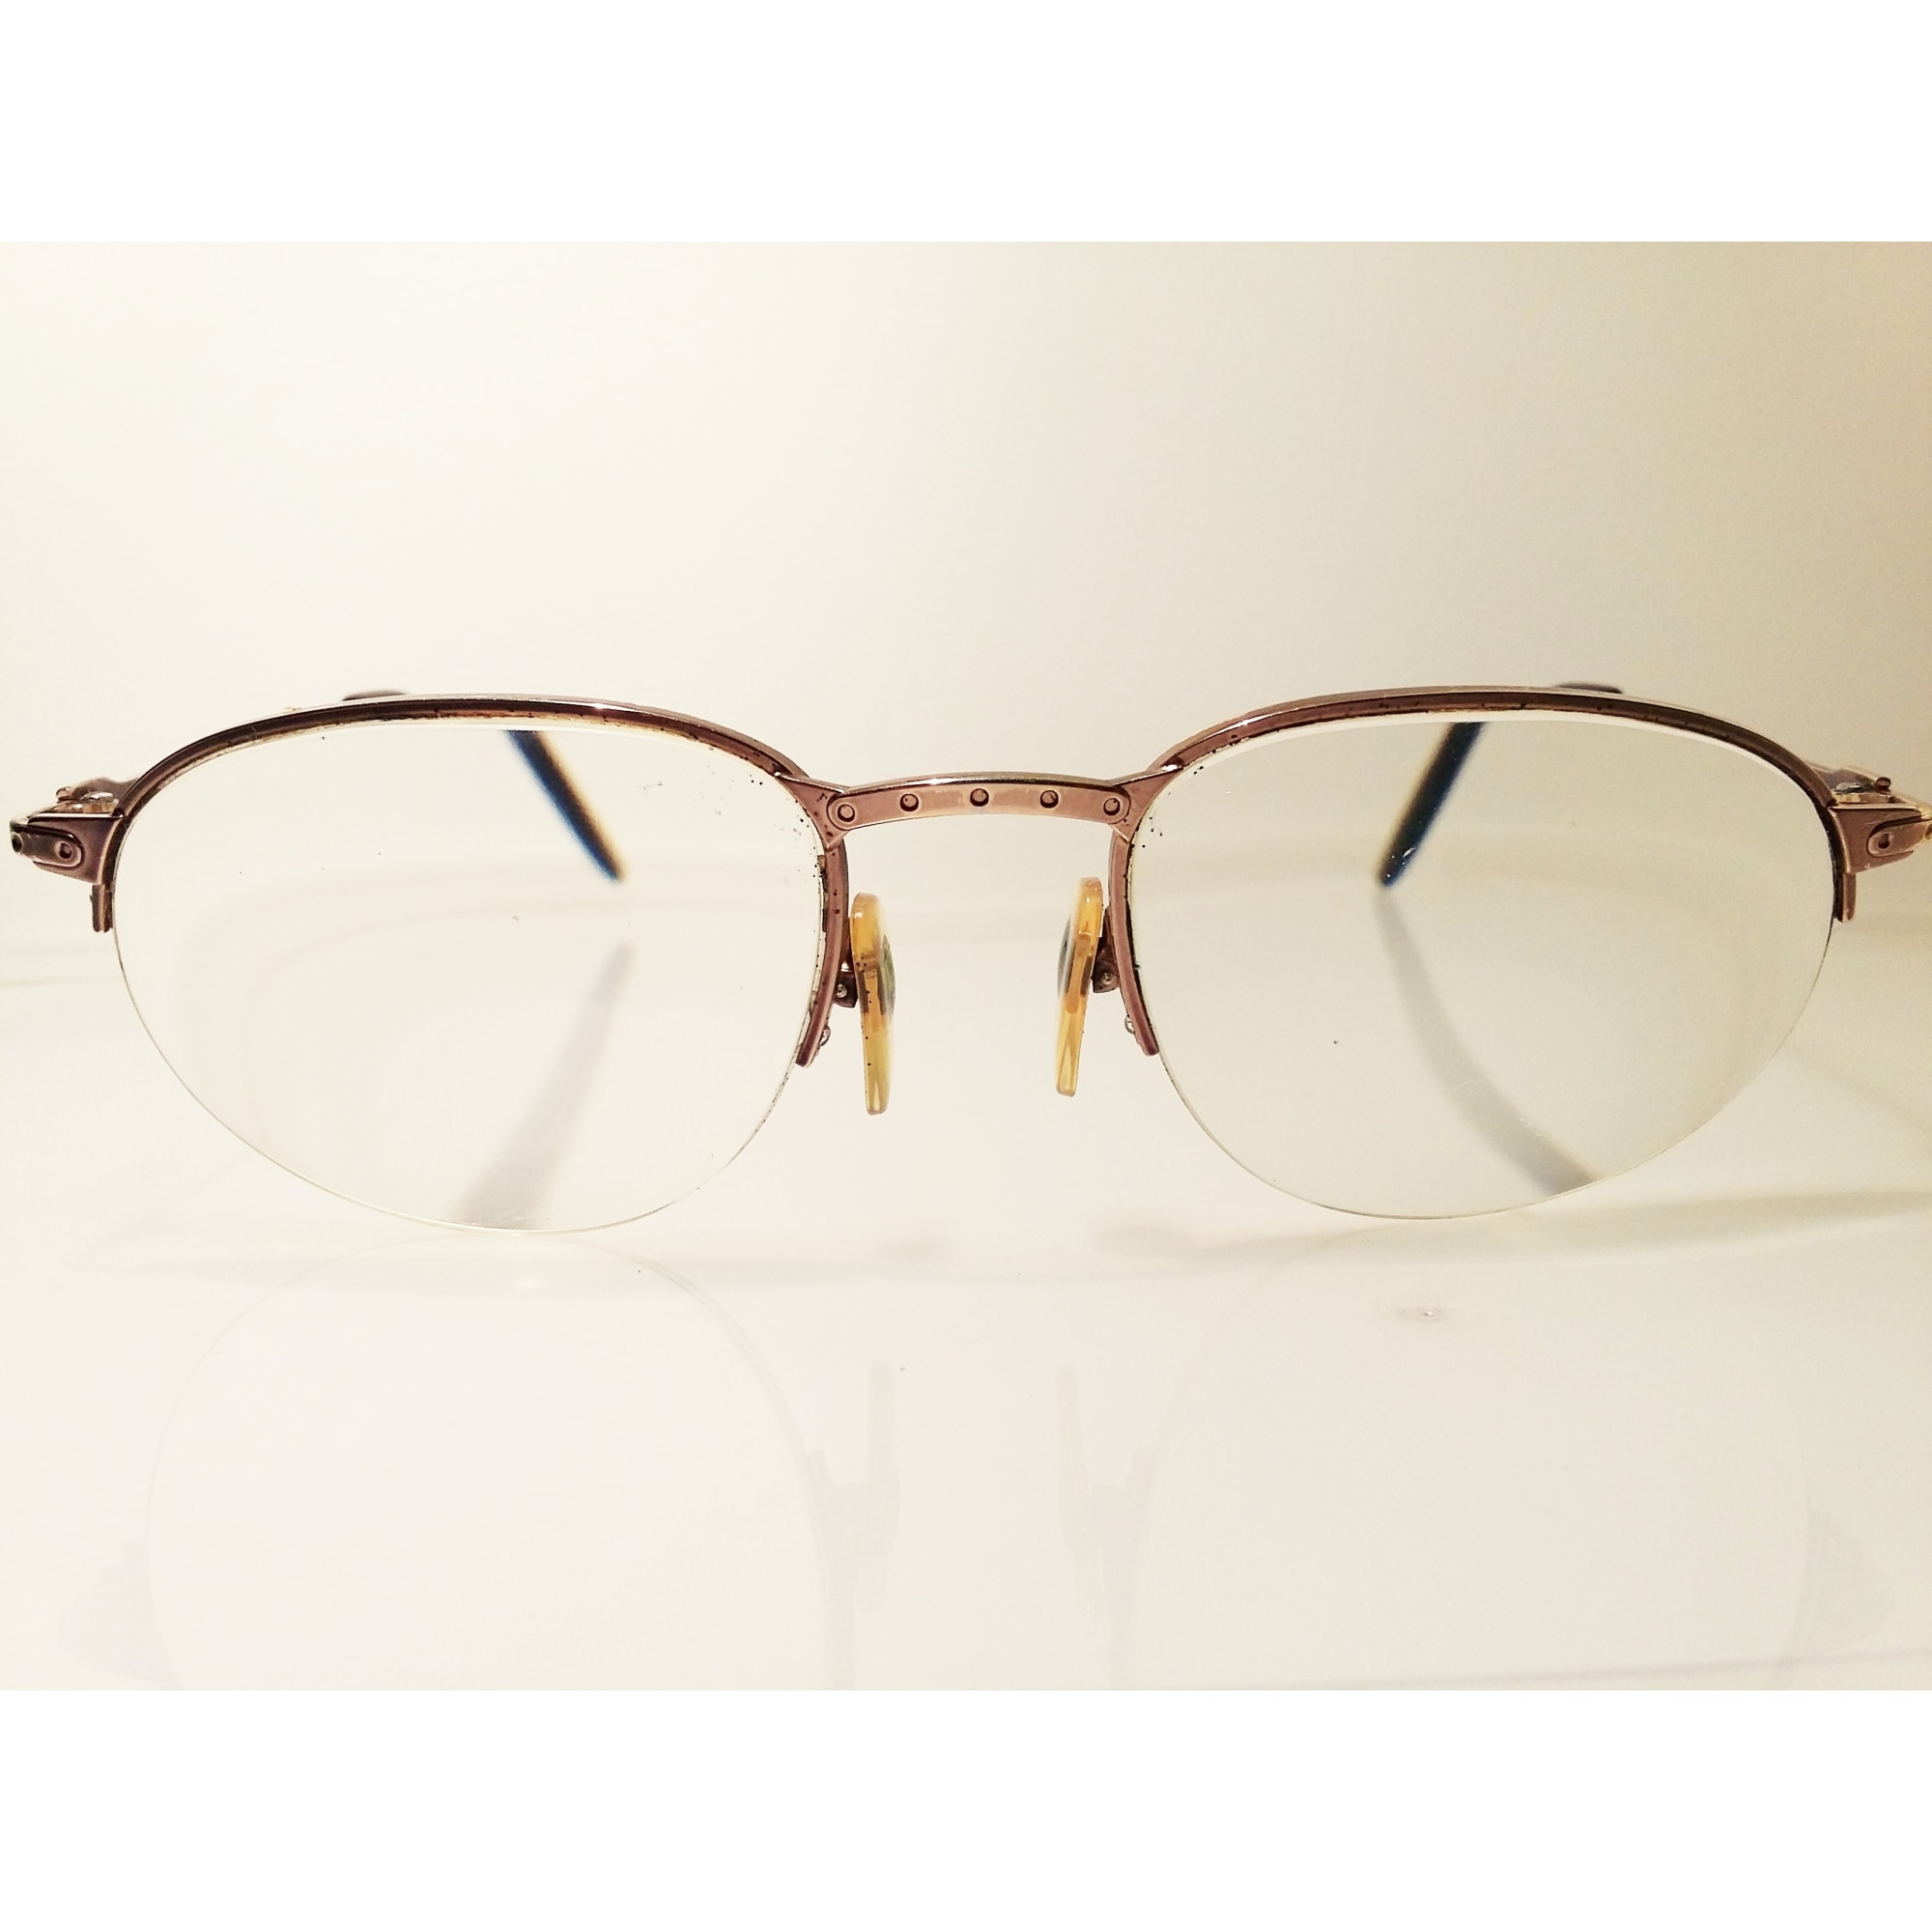 Eyeglass Frames LOUIS FÉRAUD Golden, bronze, copper